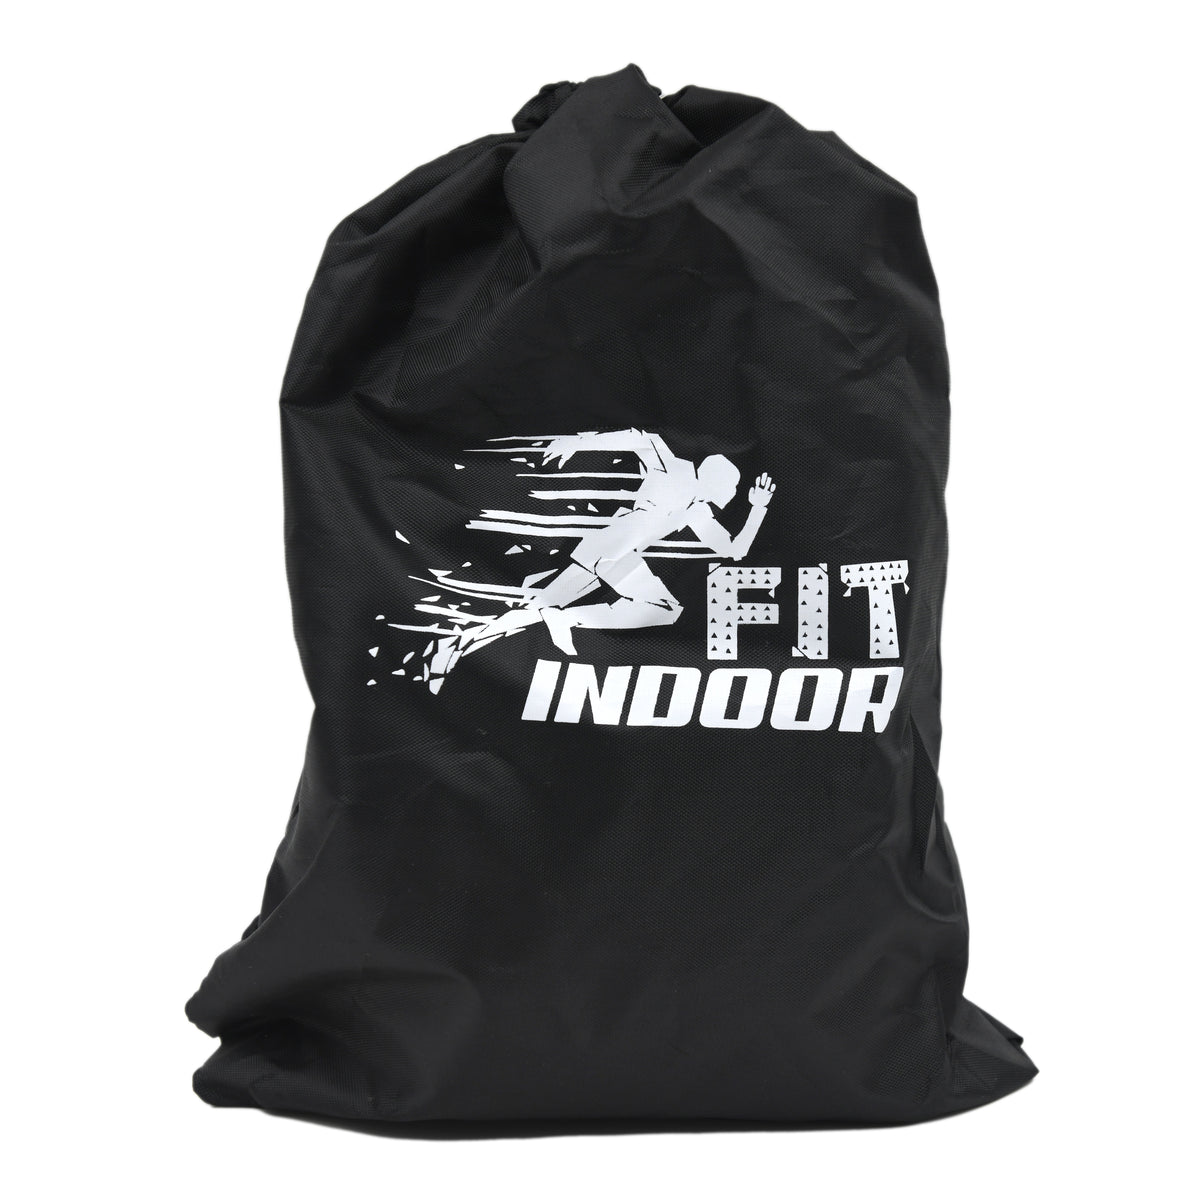 FITINDOOR RESISTANCE BANDS SET - FitIndoor™ - The N°1 Top set for full body workout